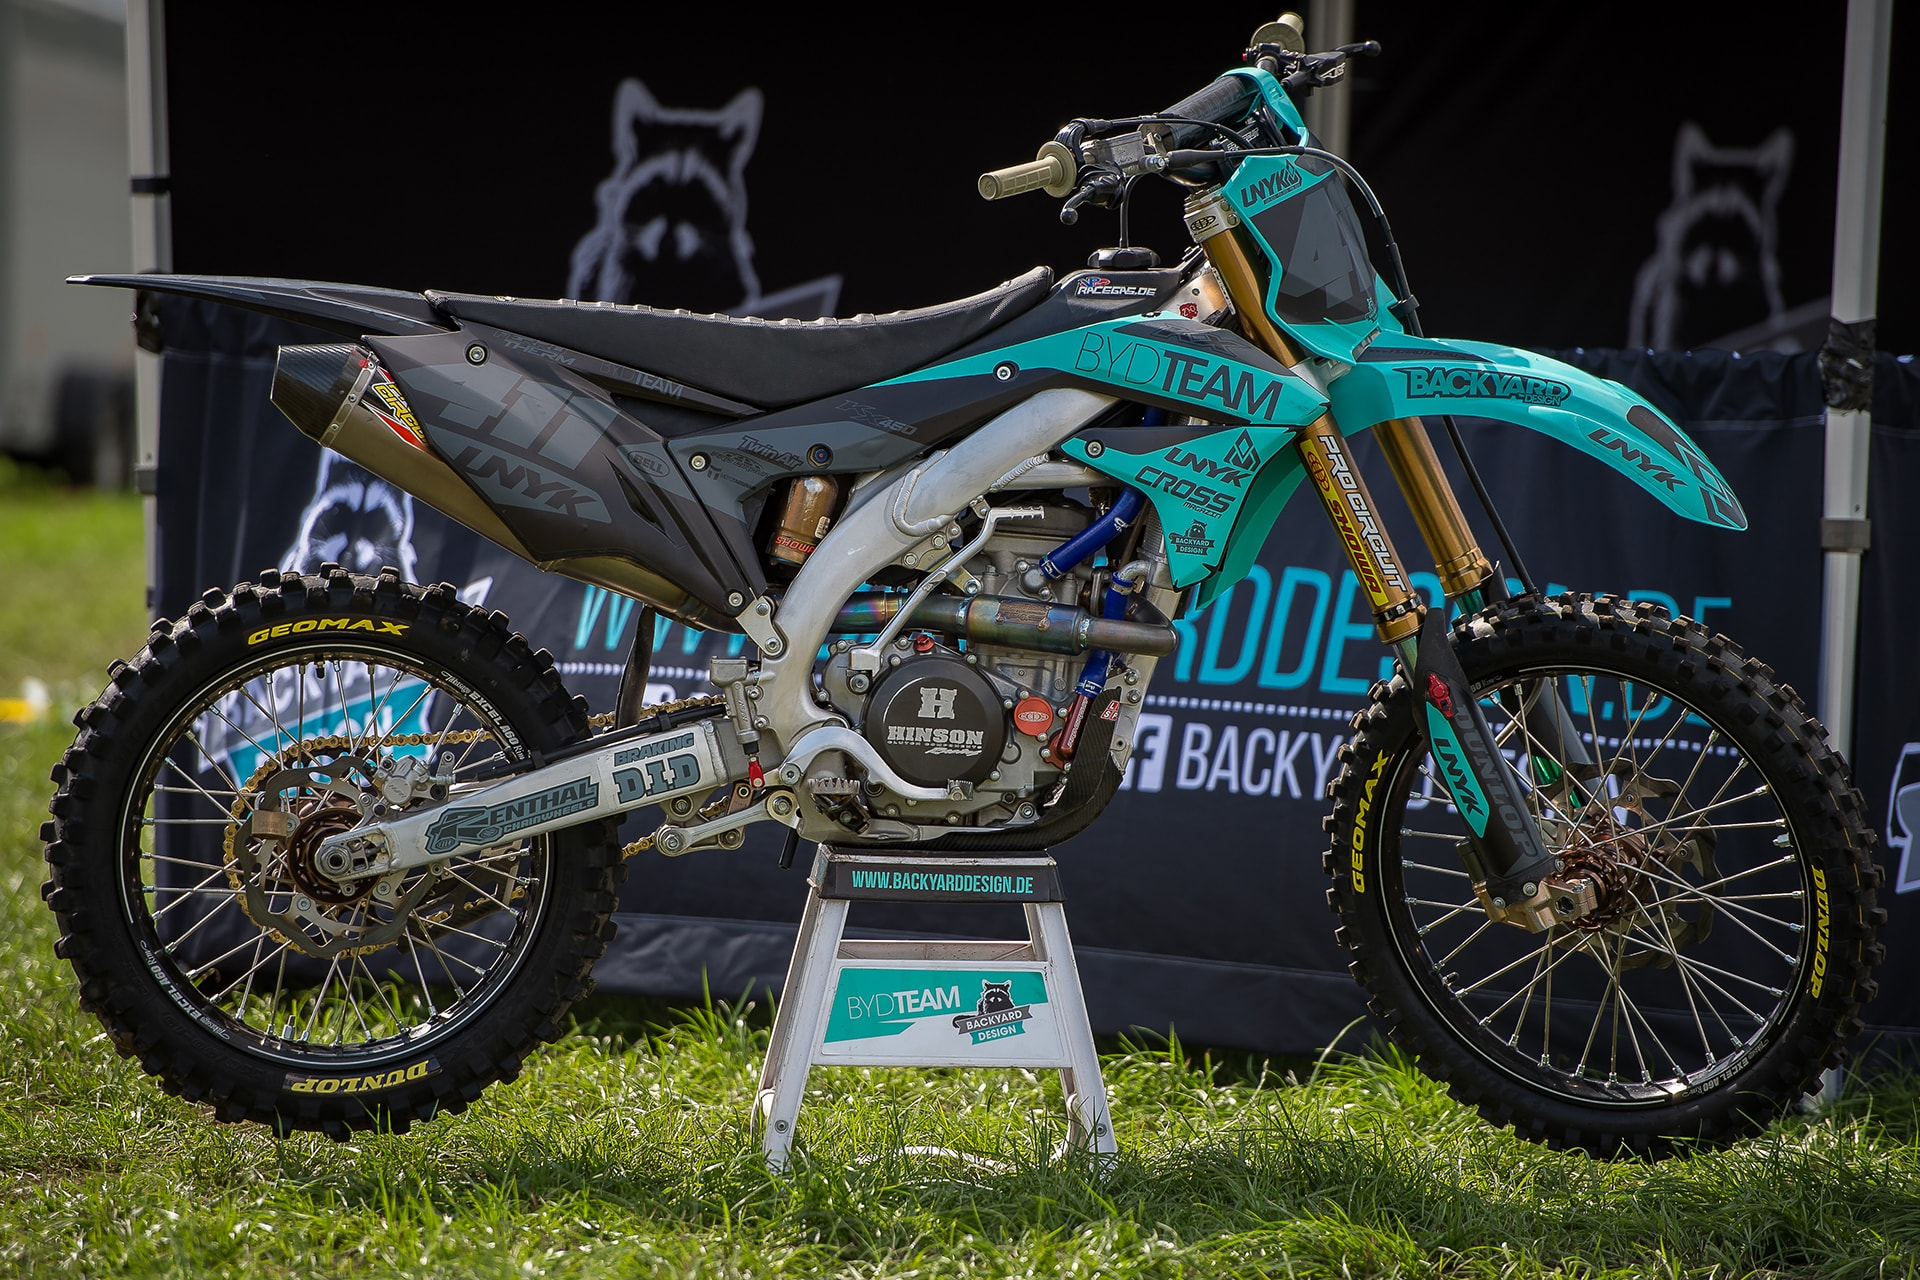 Acerbis Tld Special Edition